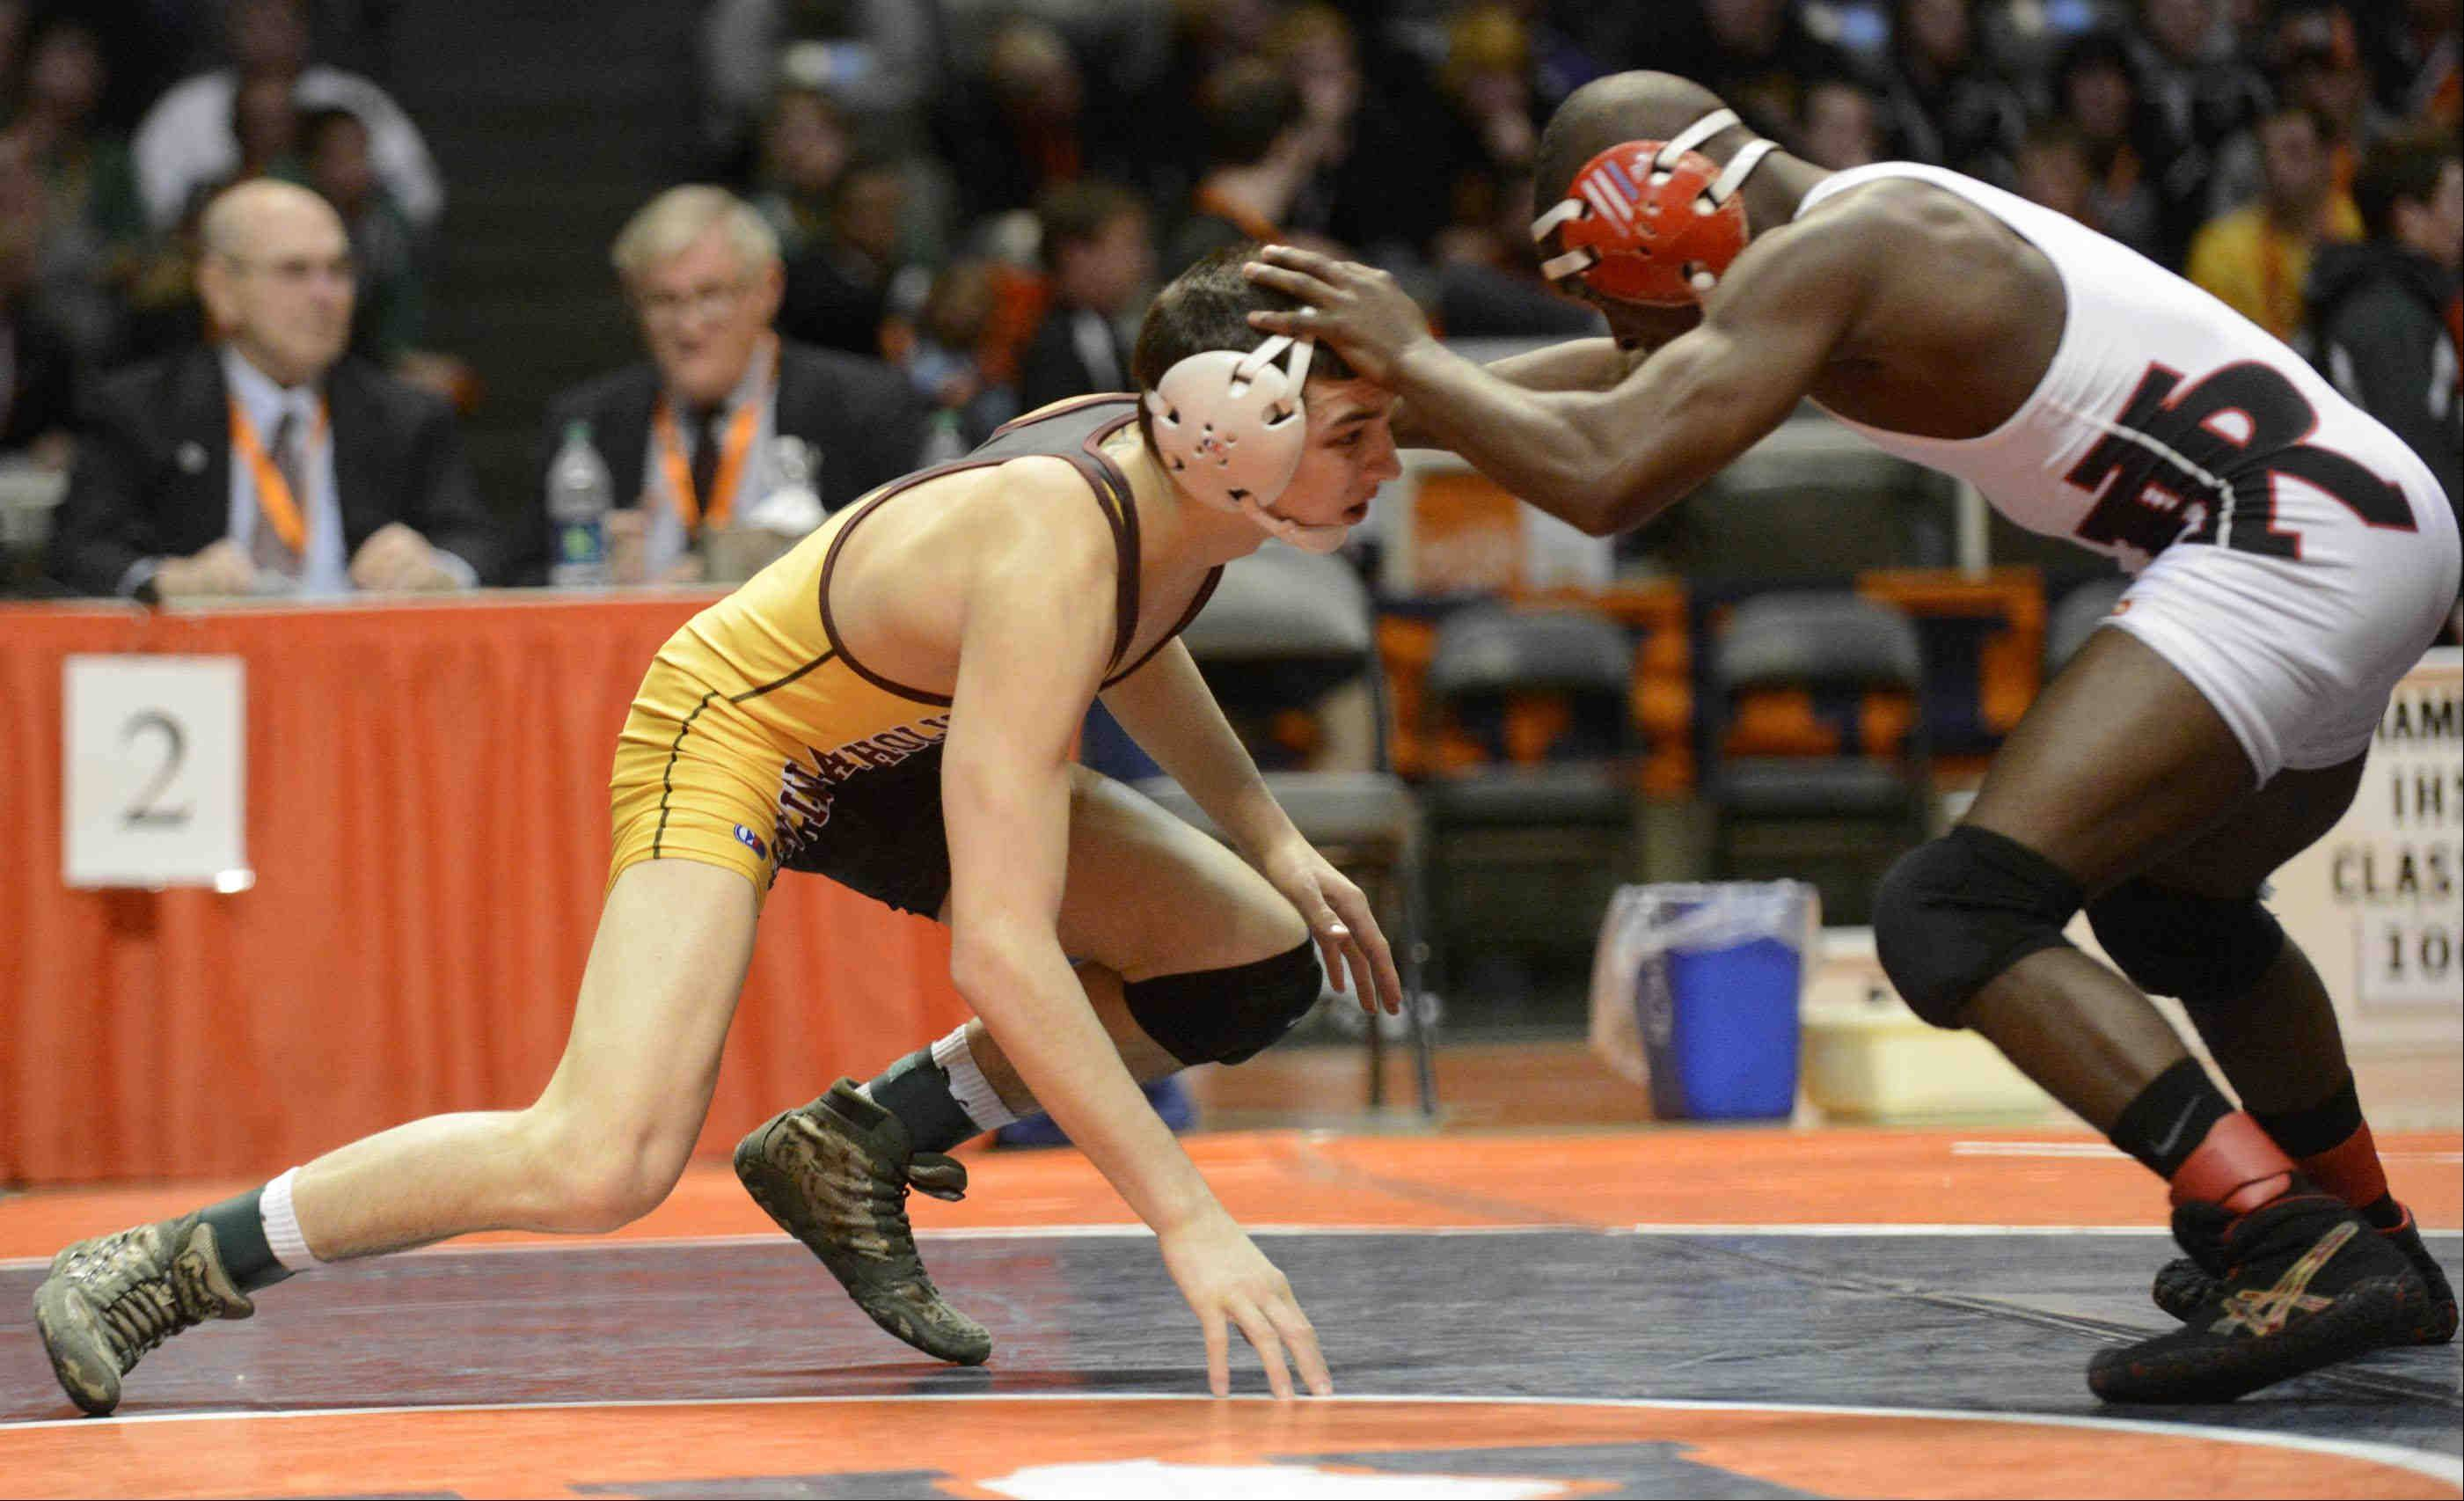 Lombard Montini's Vince Turk is held off by BJ McGhee of Rock Island in the Class 2A 120-pound IHSA championship final wrestling match at Assembly Hall in Champaign. Turk lost the match.